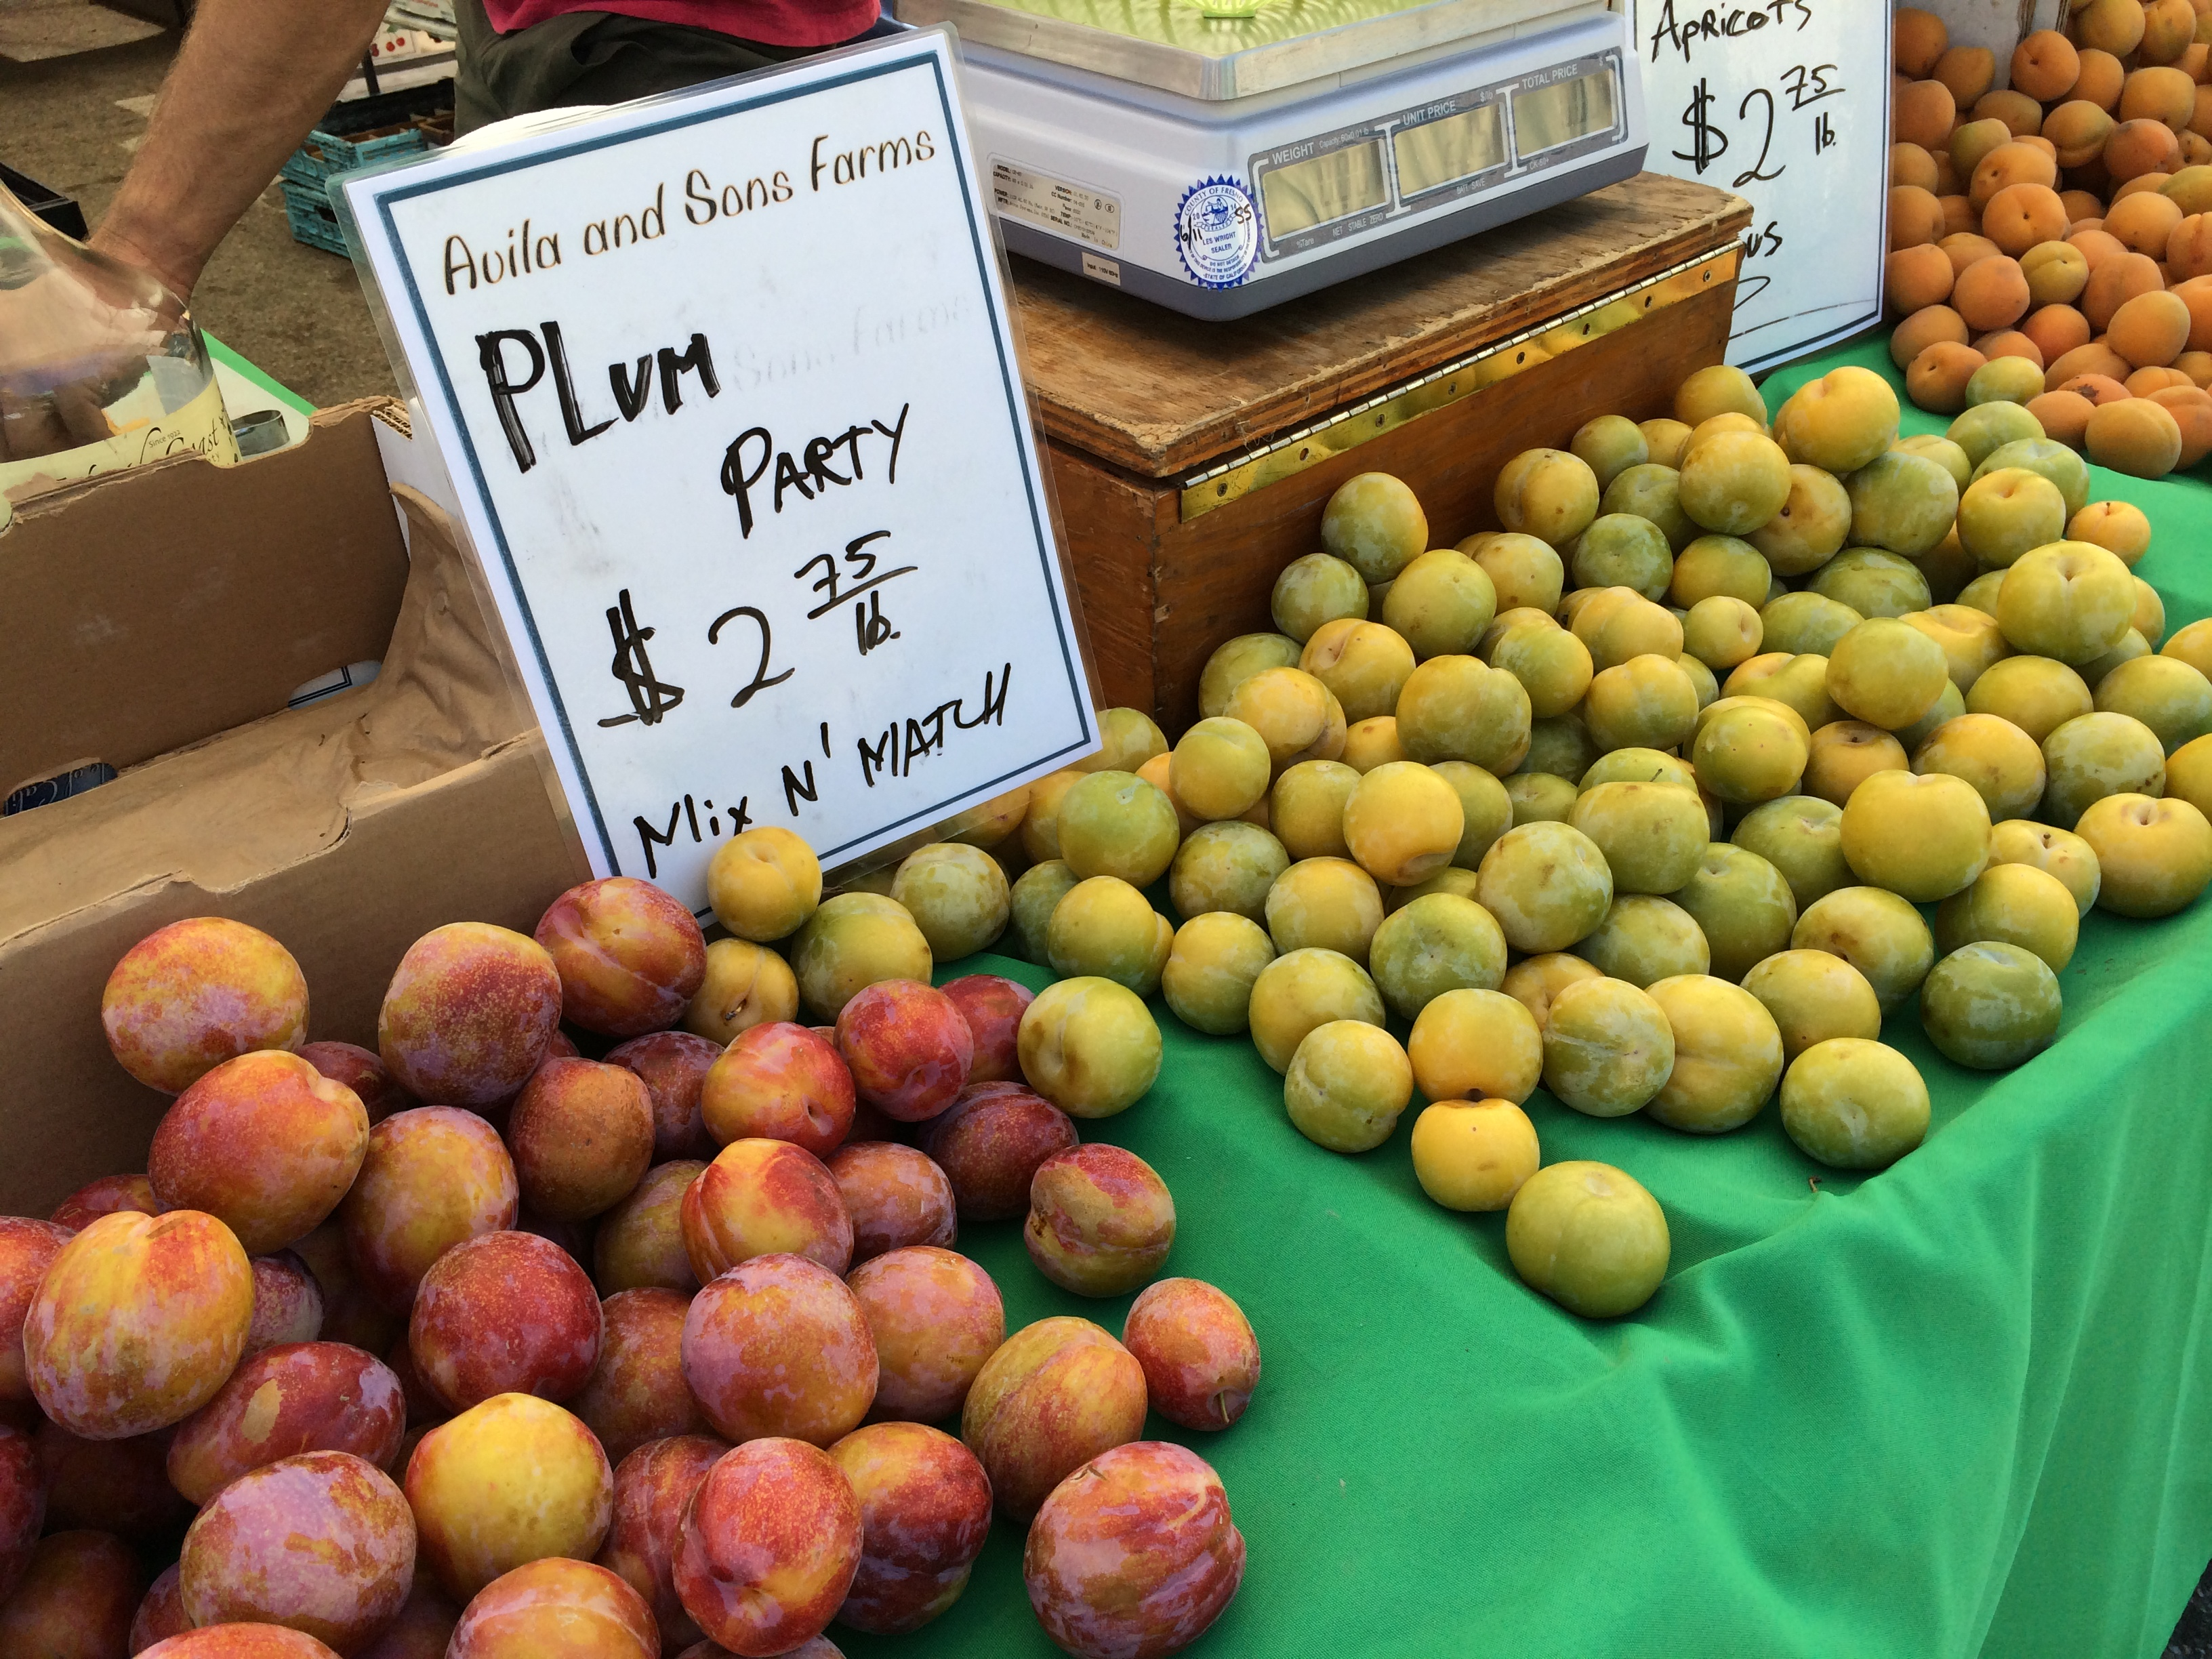 Plum party at Santa Monica farmer's market